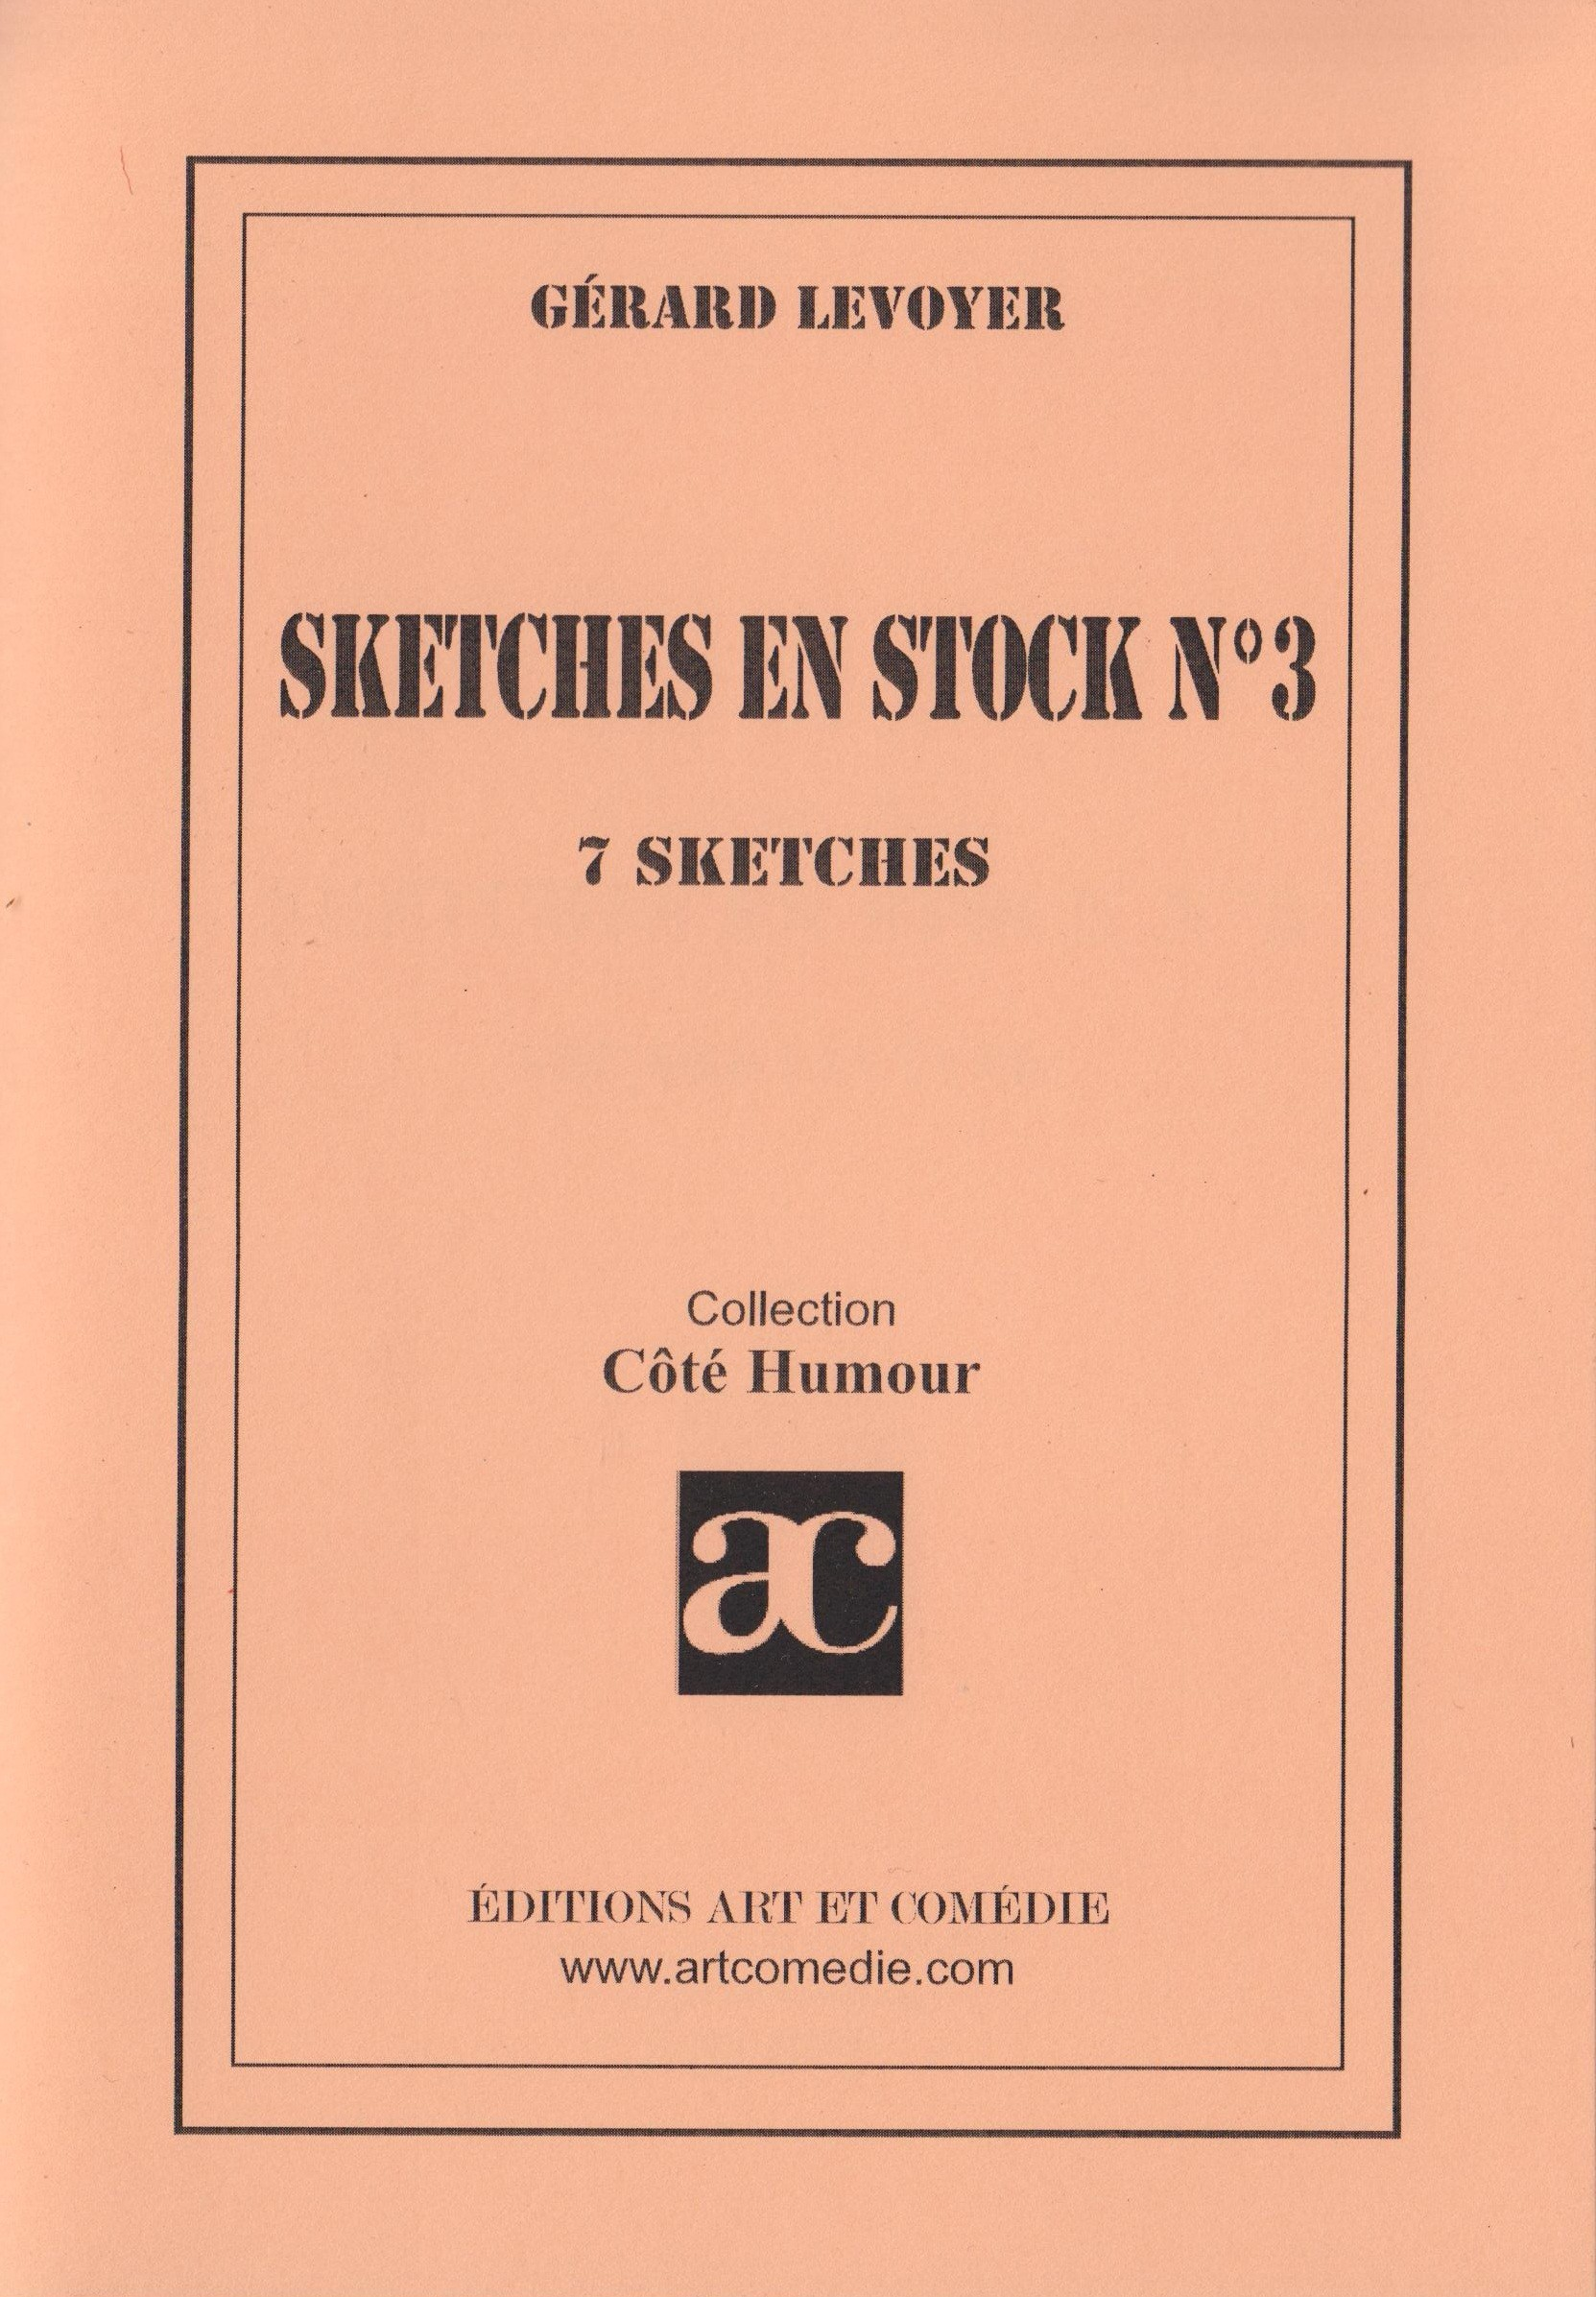 Sketches en stock n°3